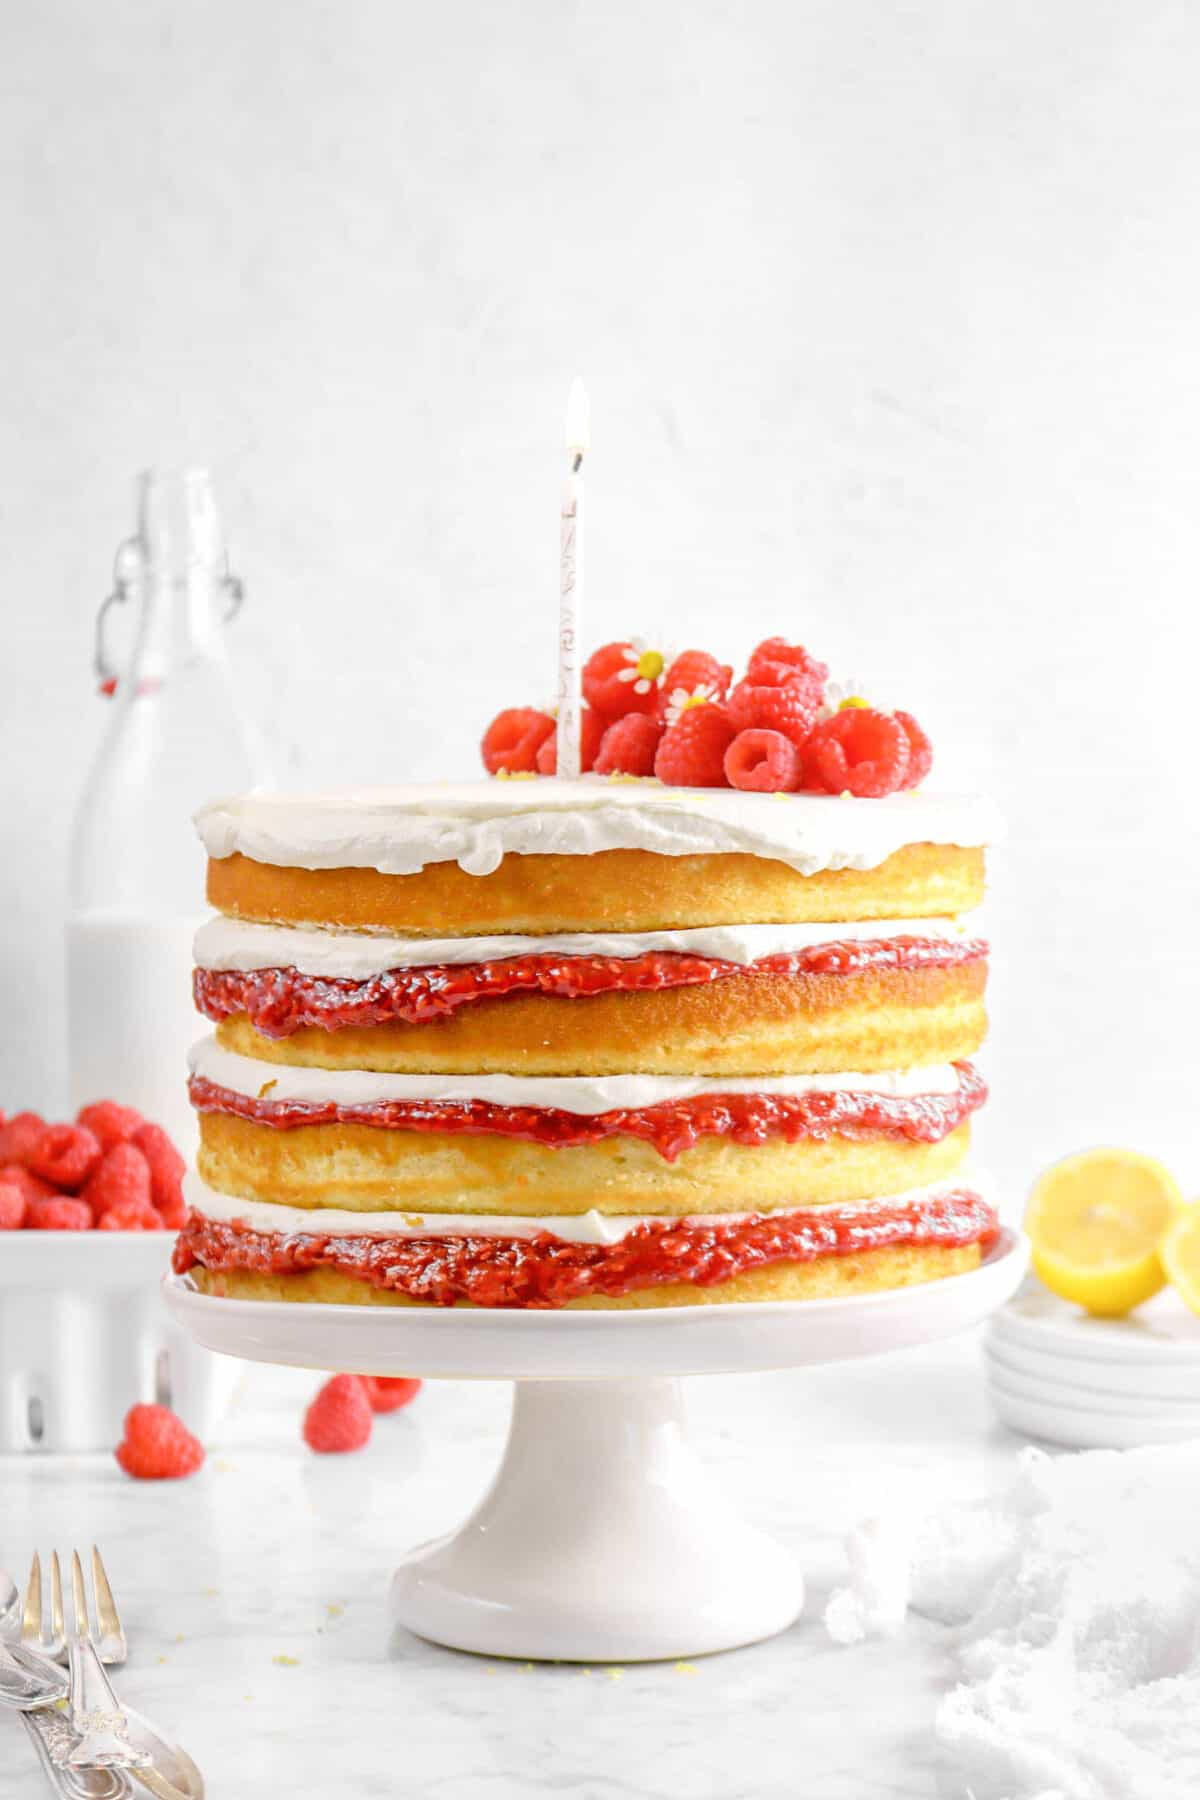 lemon cake with a candle and raspberries on top